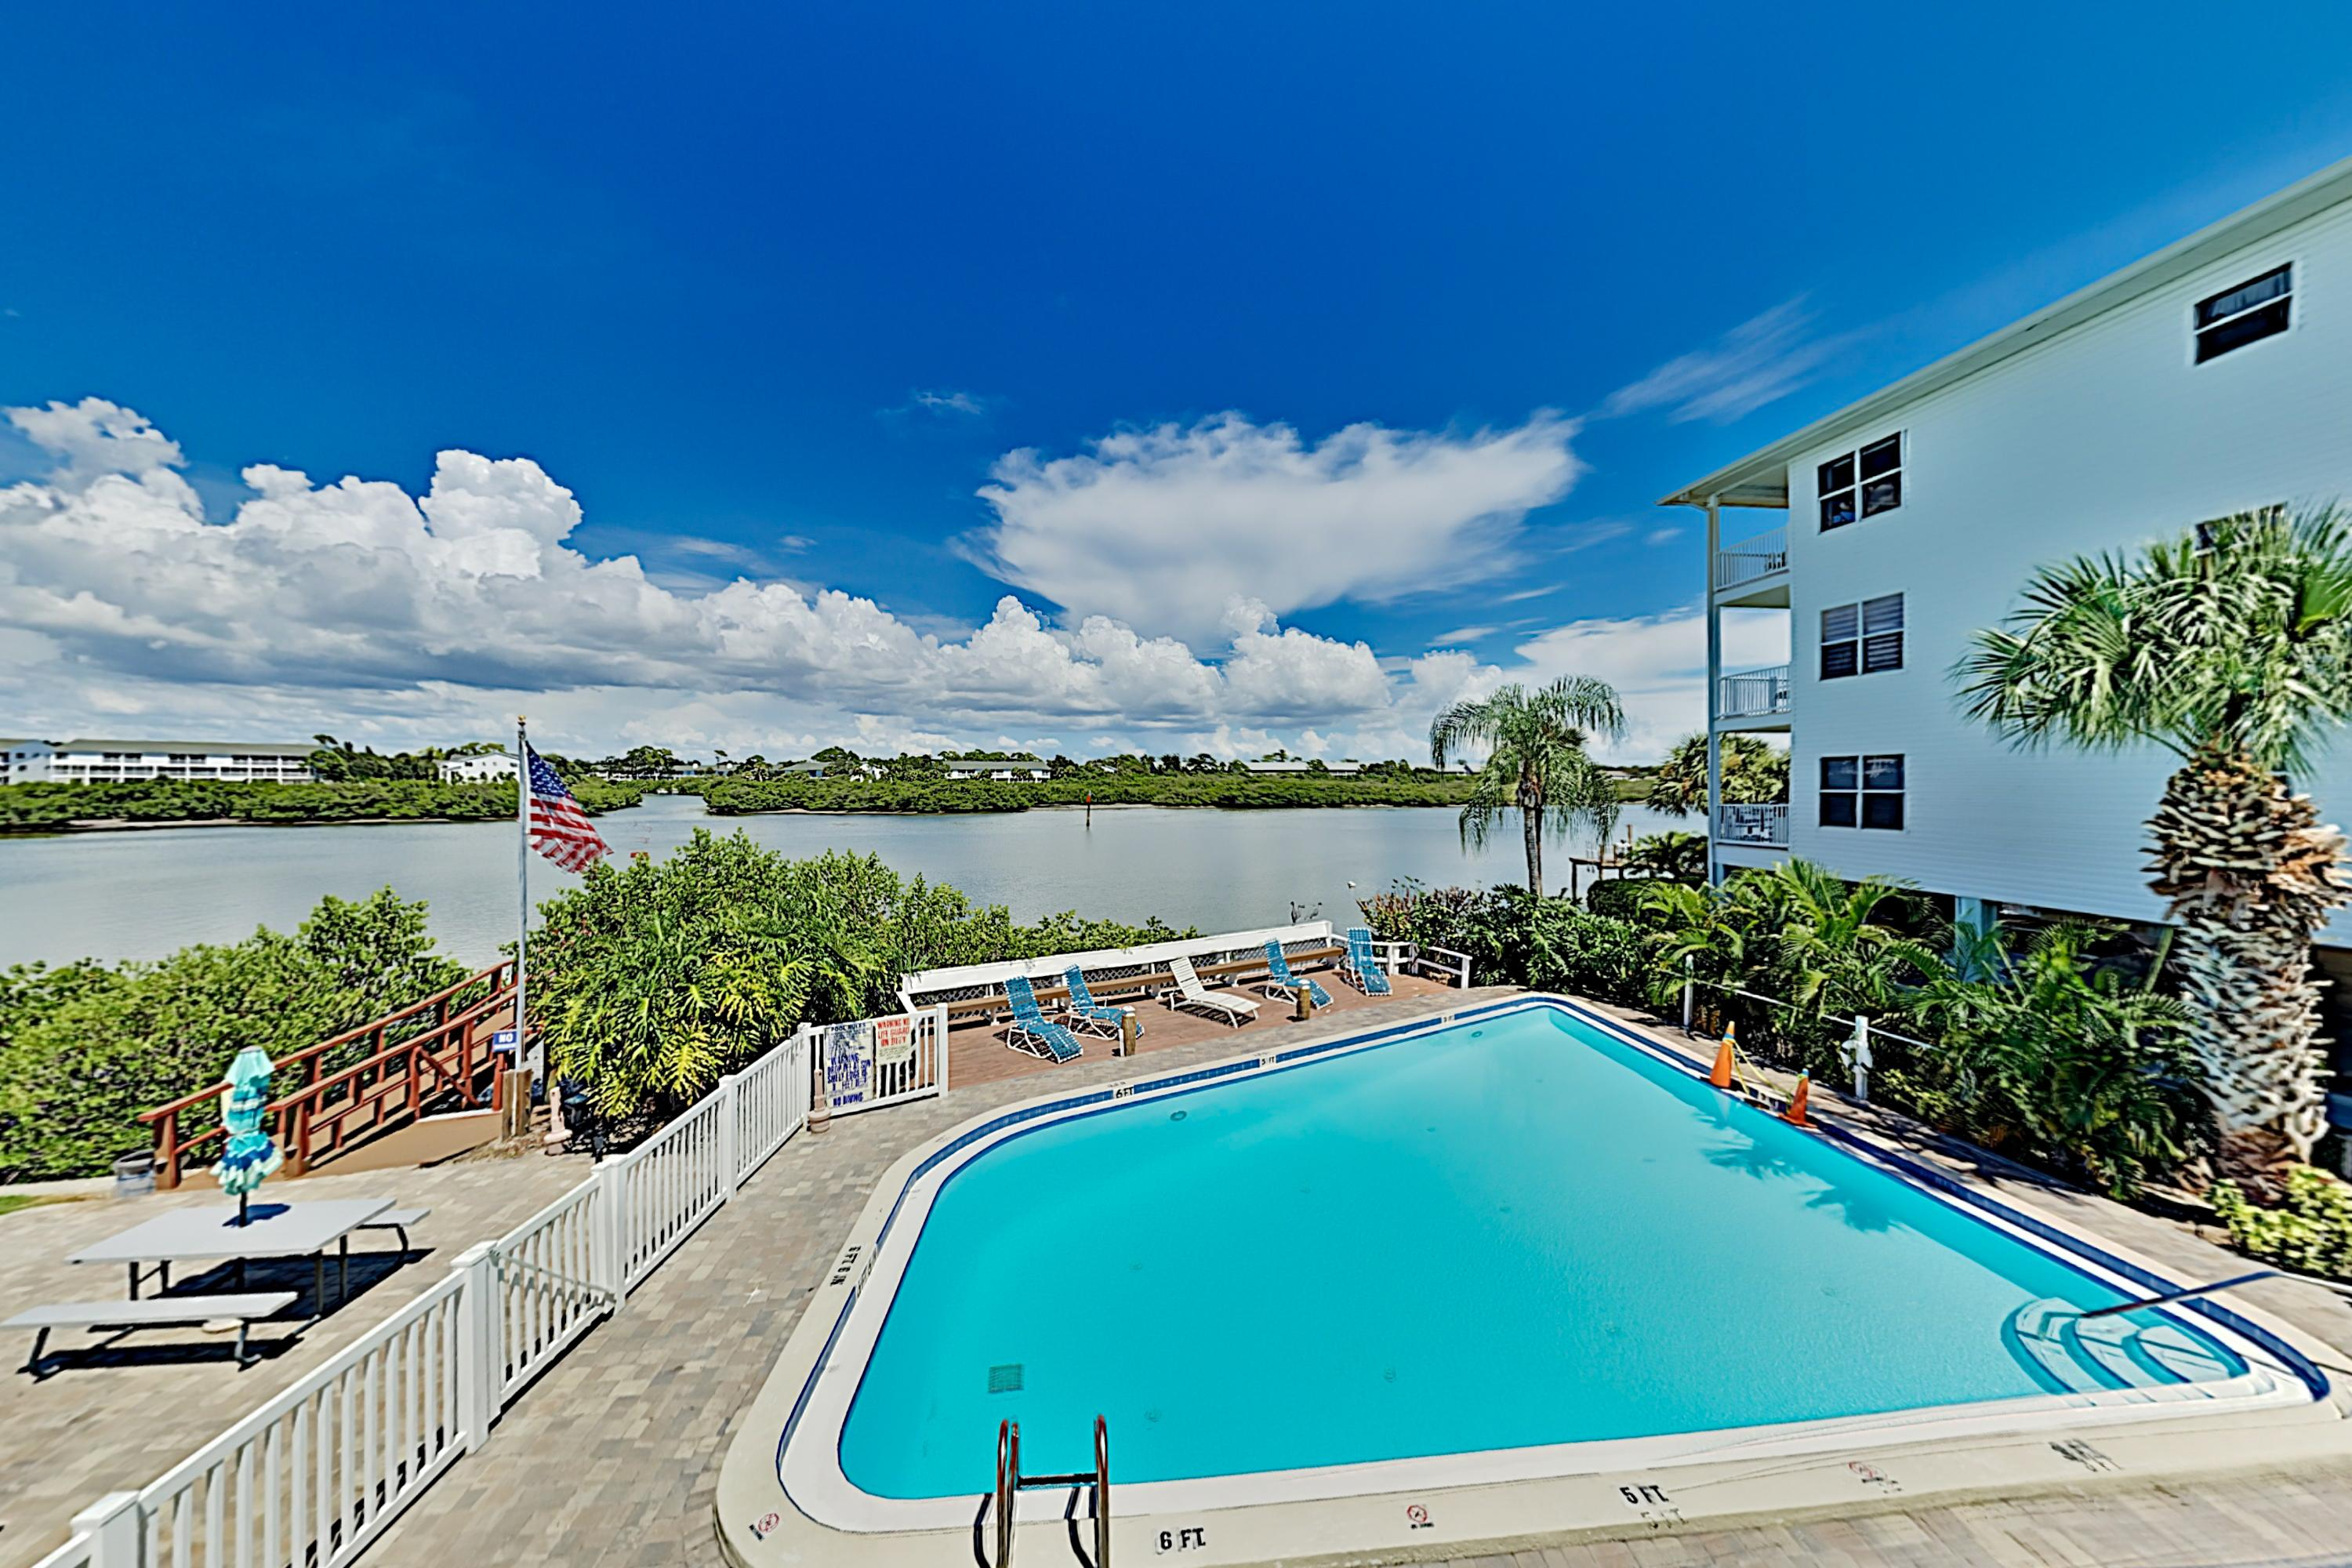 Property Image 2 - Gulf View Beach Condo with Pool & Fishing Dock Access, Near Shops